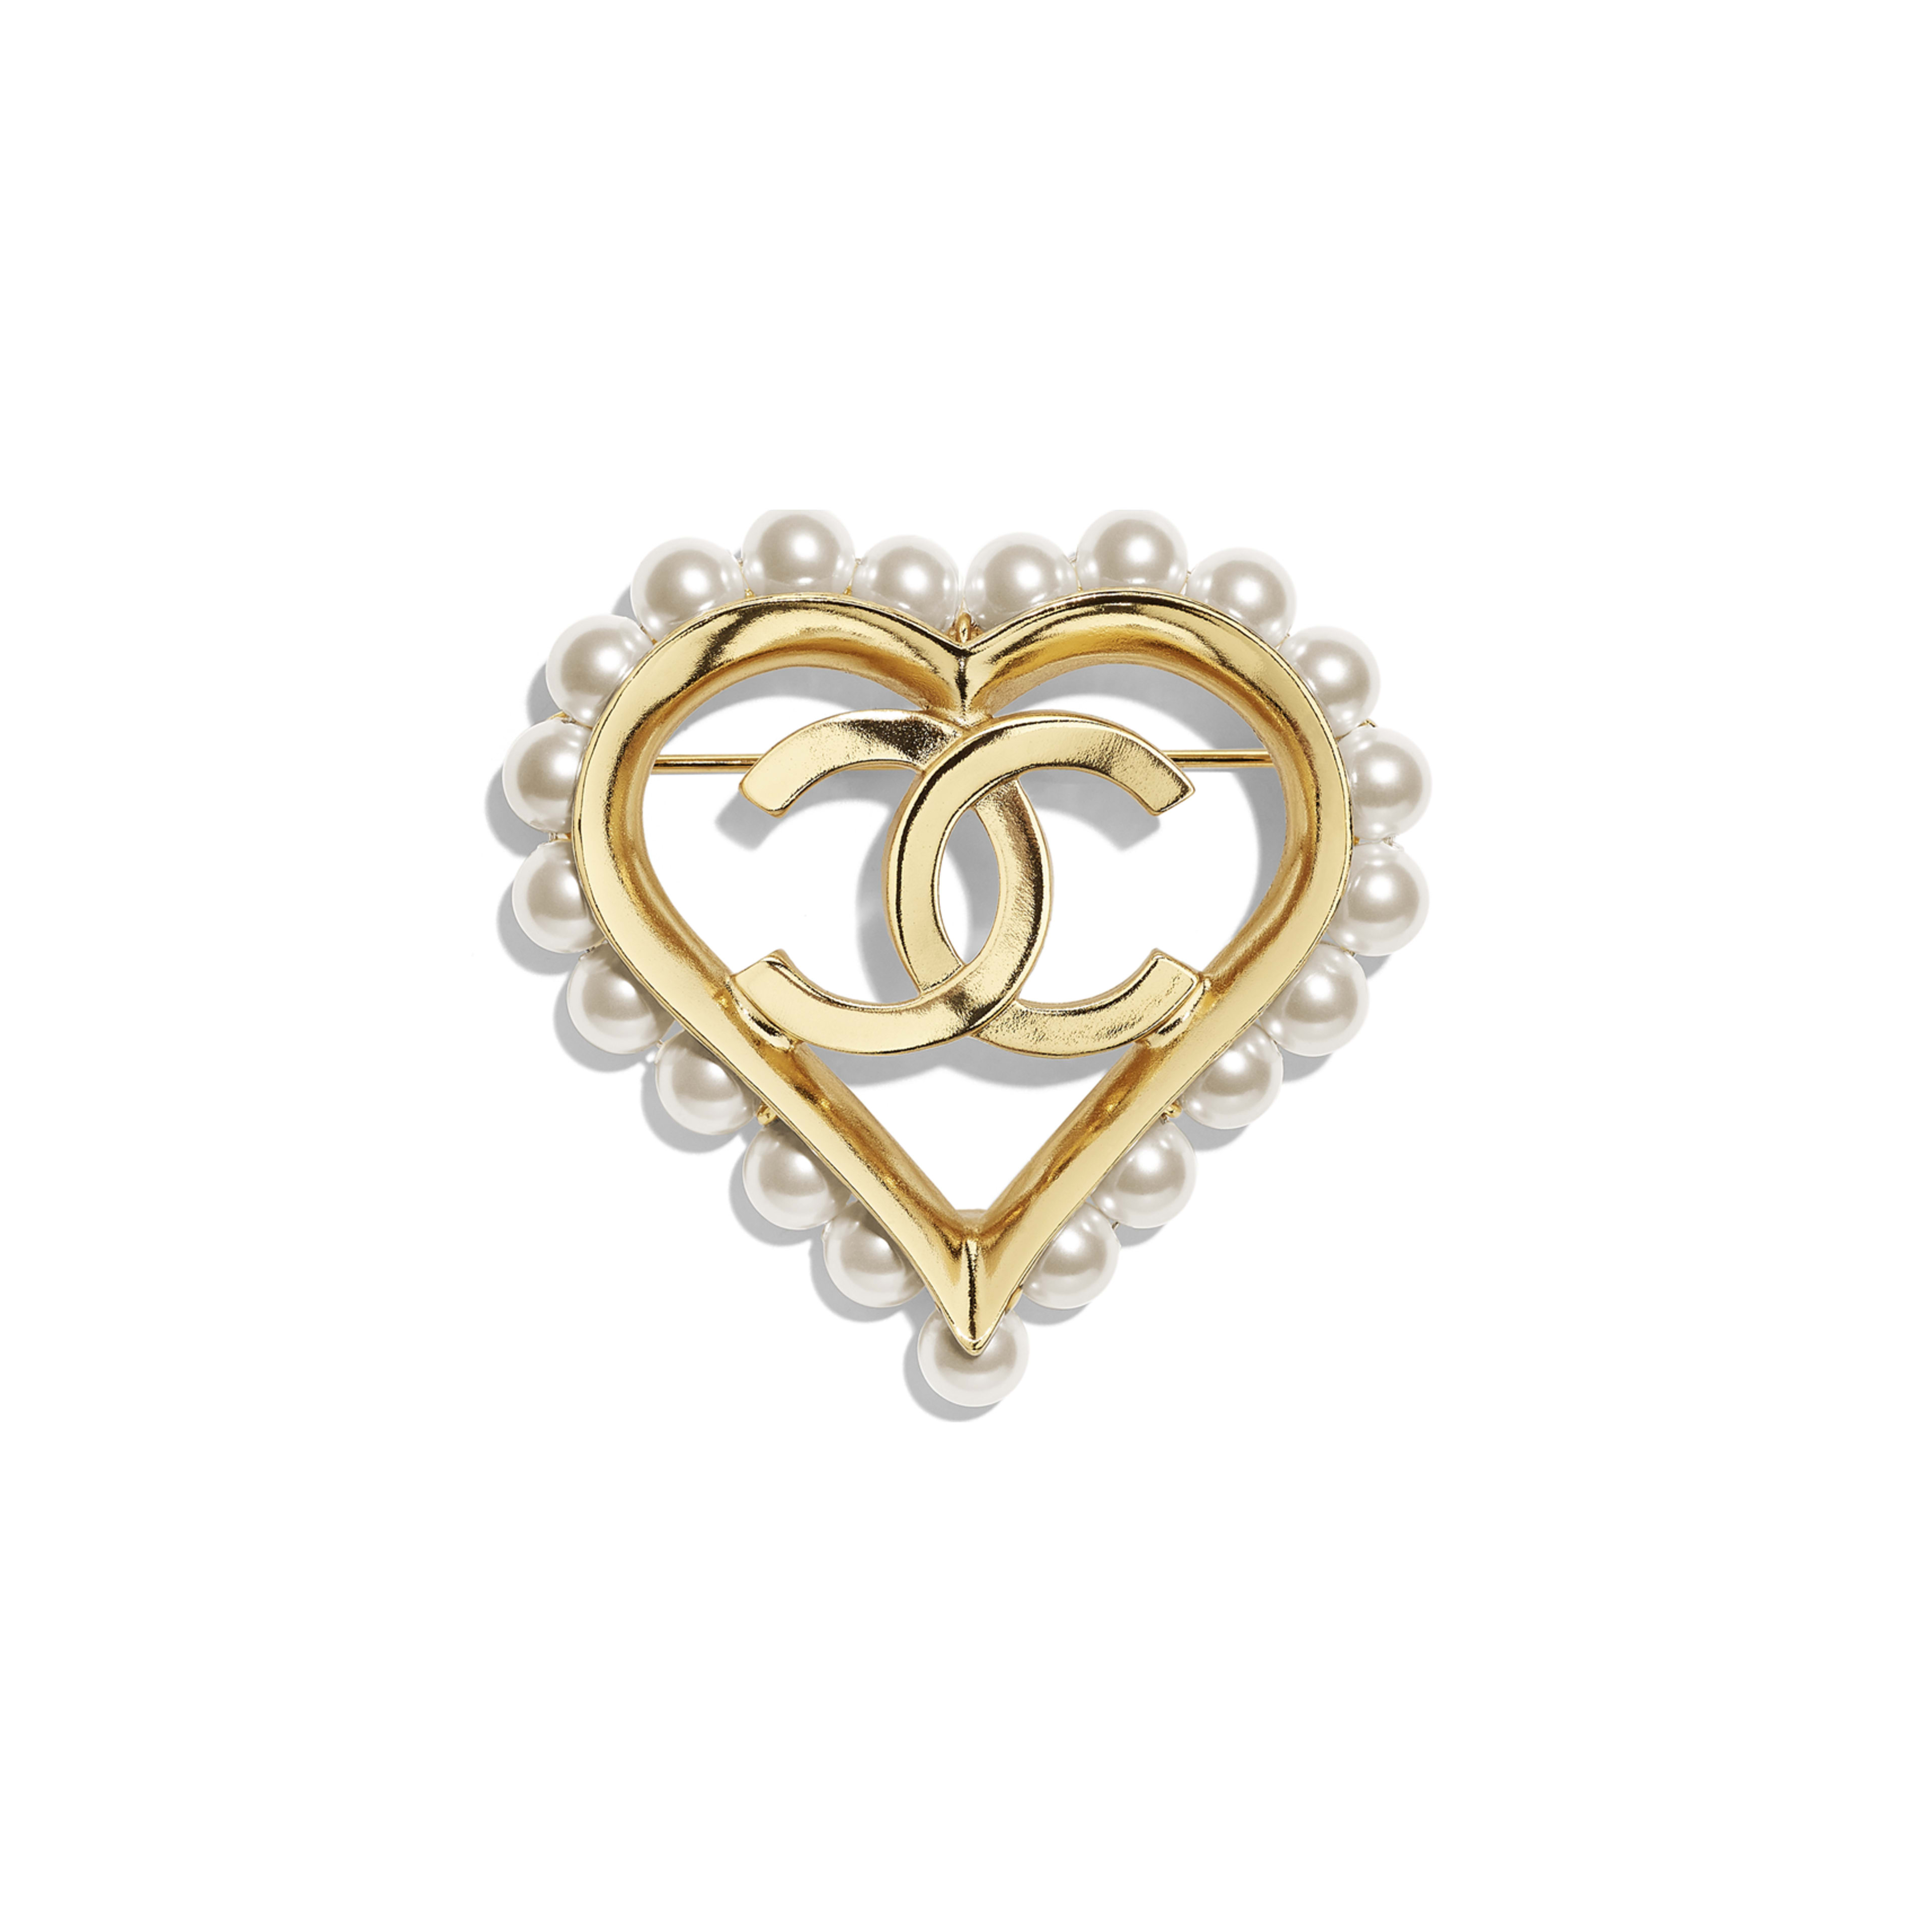 Brooch - Gold & Pearly White - Metal & Glass Pearls - Default view - see full sized version